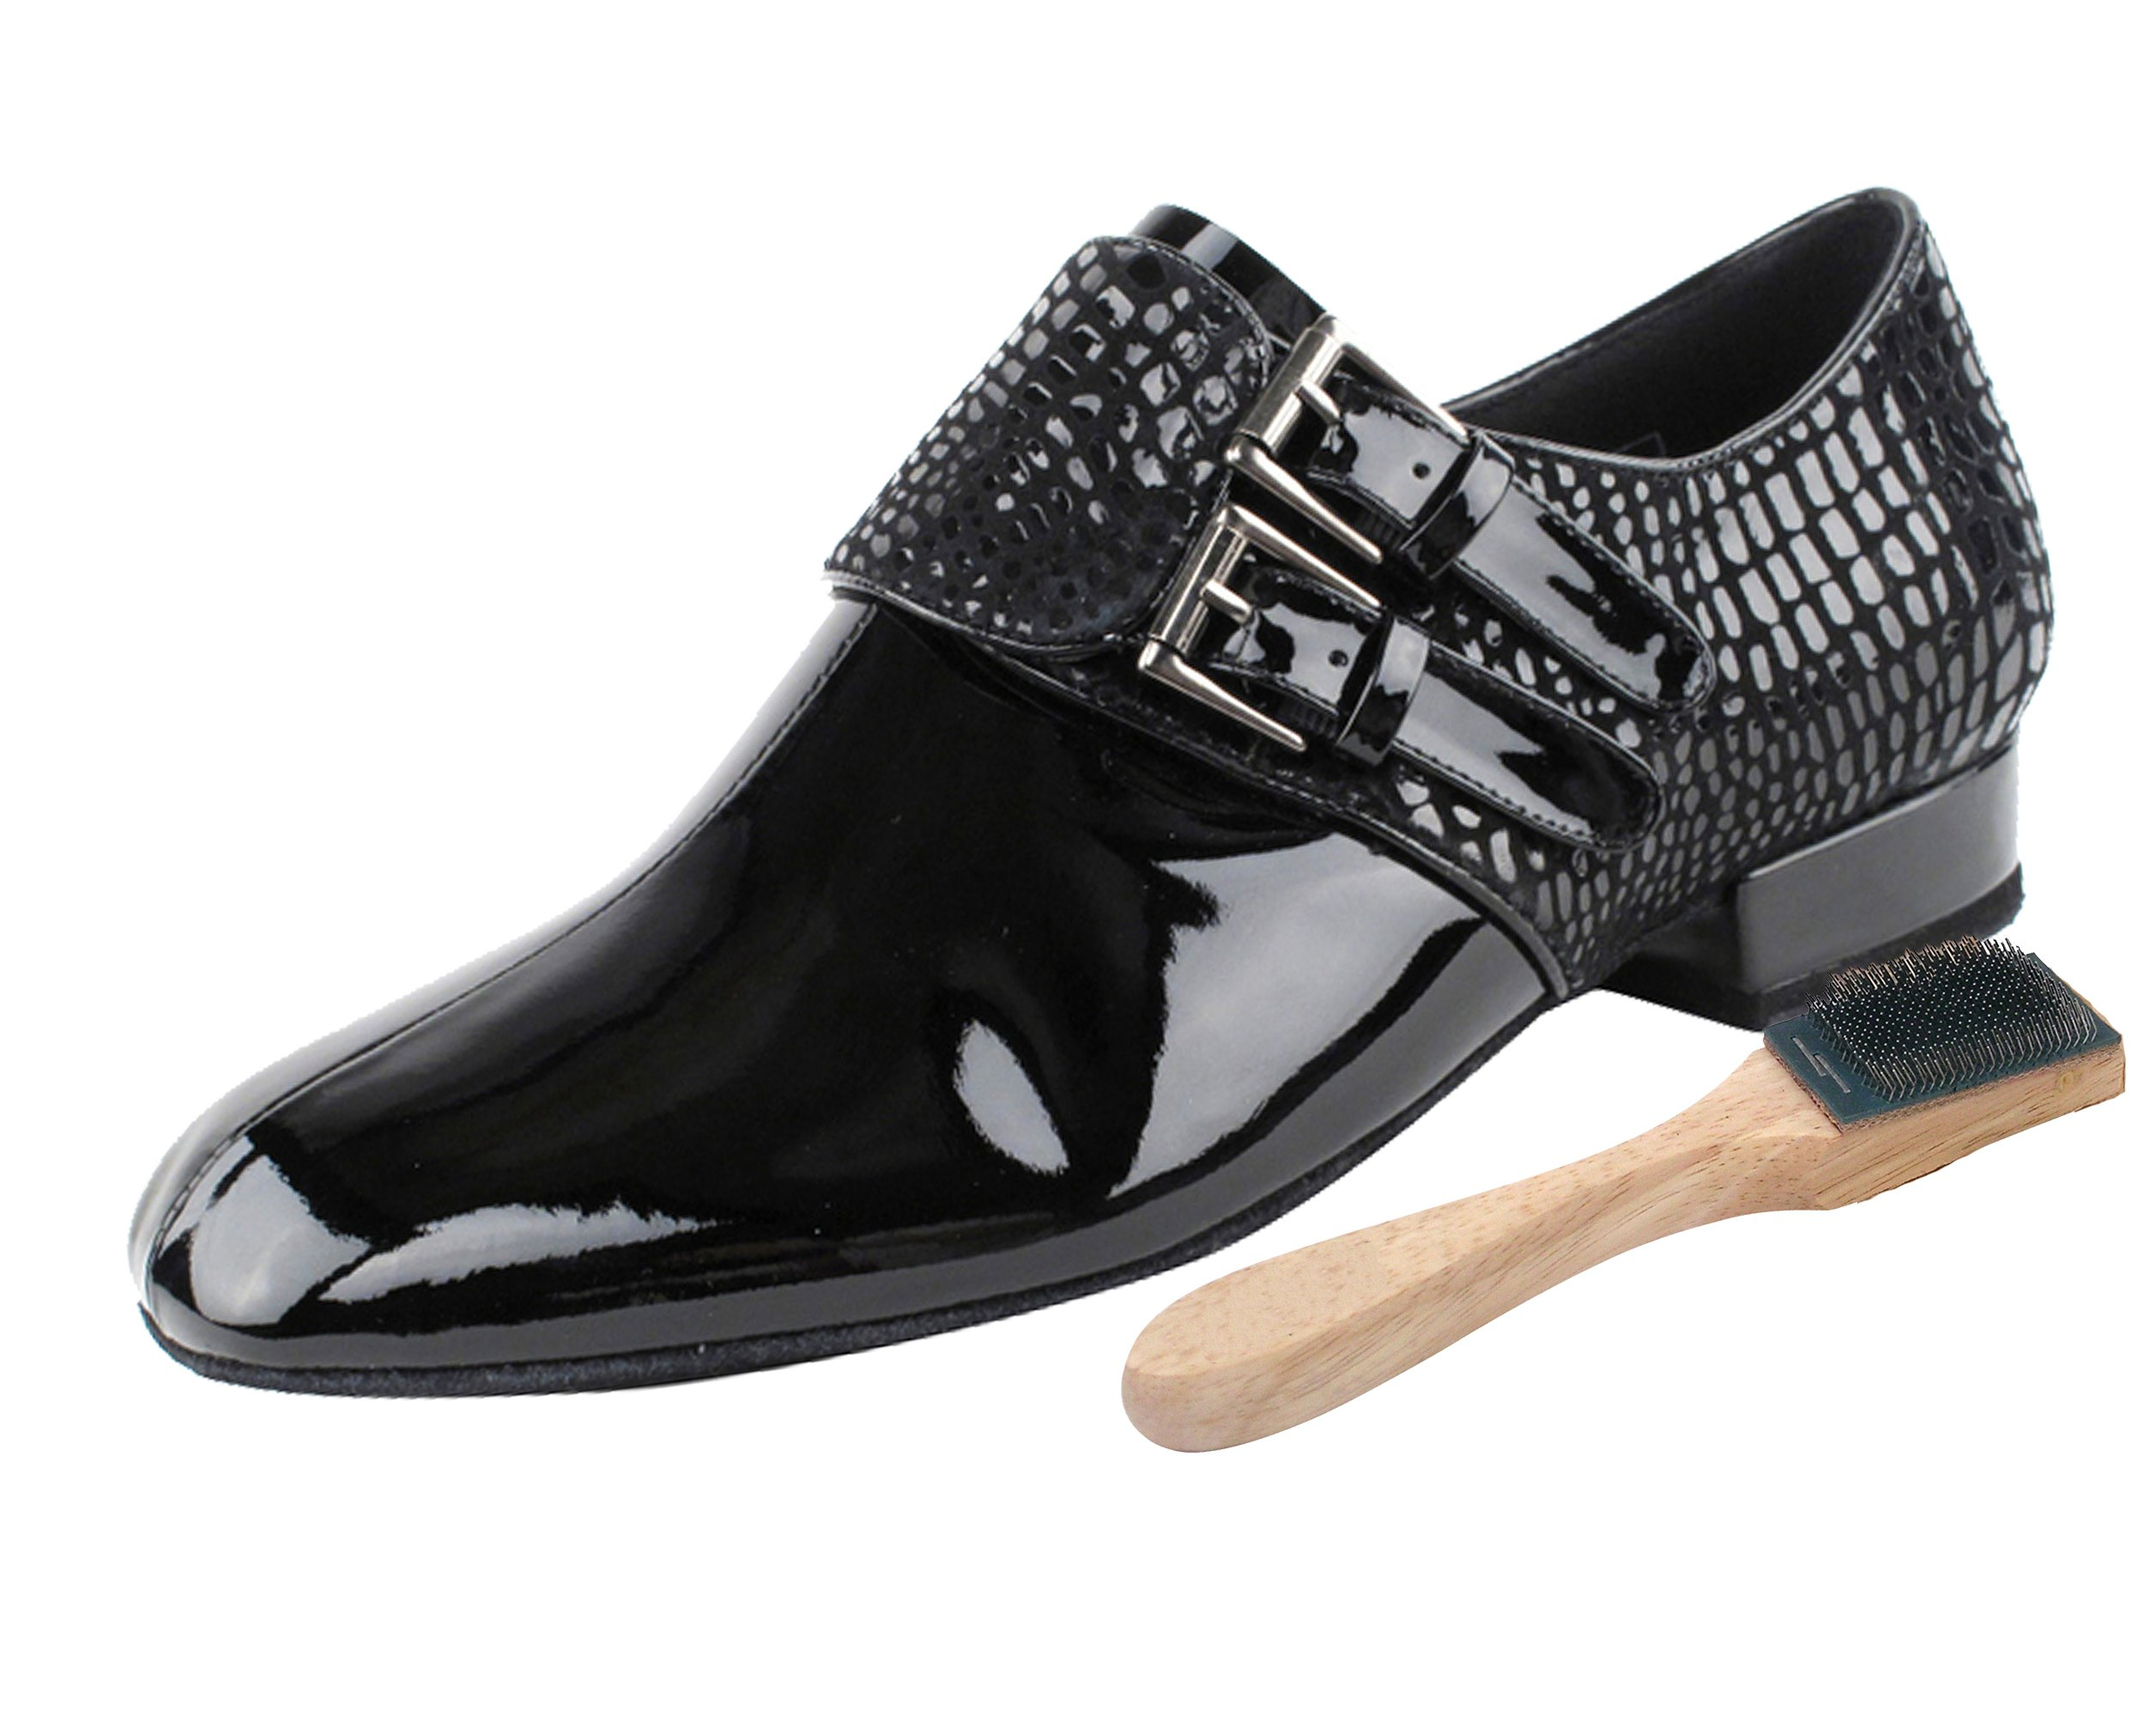 Very Fine Men's Salsa Ballroom Tango Latin Dance Shoes Style CD9006B Bundle with Dance Shoe Wire Brush, Black Patent 10 M US Heel 1 Inch by Very Fine Dance Shoes